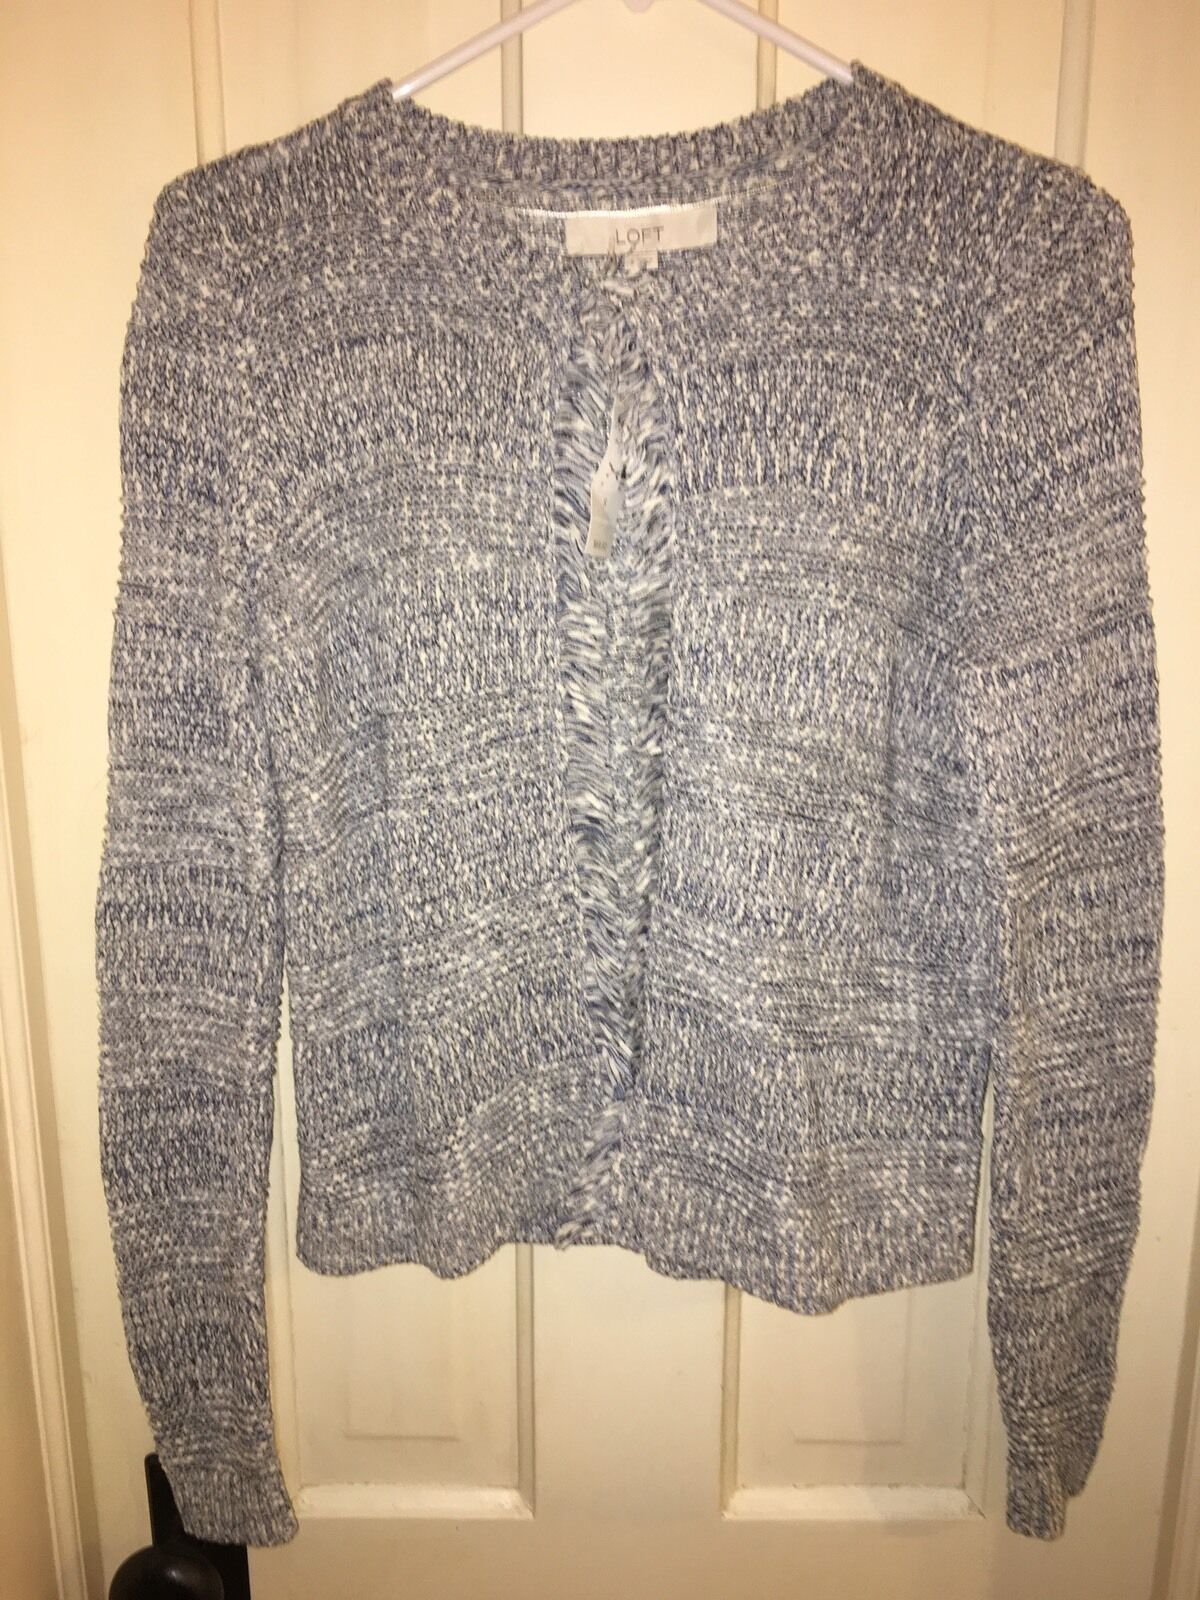 NWT LOFT bluee And White Sweater